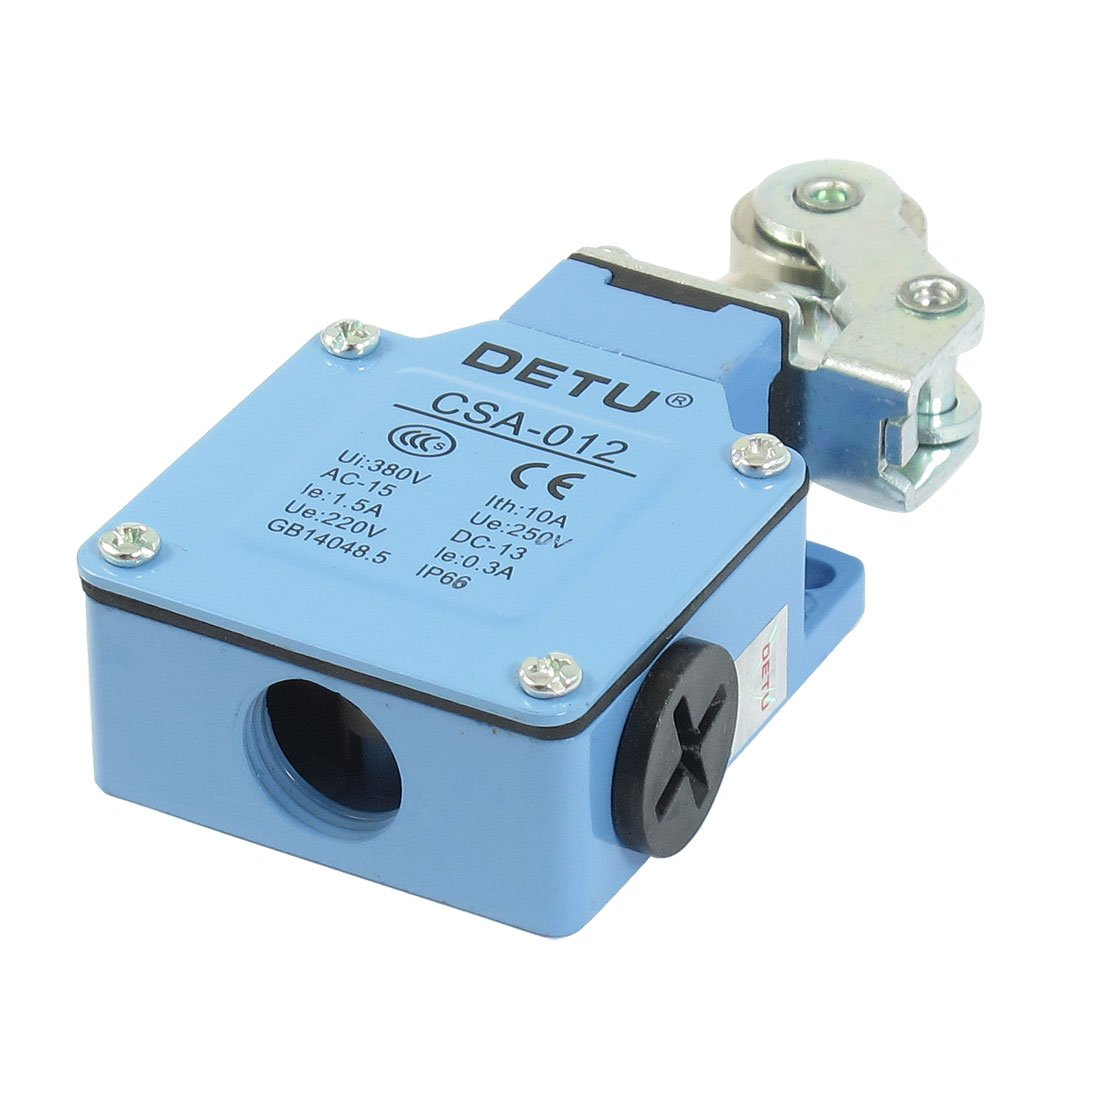 CSA-012 AC 250V 1.5A DC 220V 0.3A Momentary Roller Lever Actuator Limit Switch